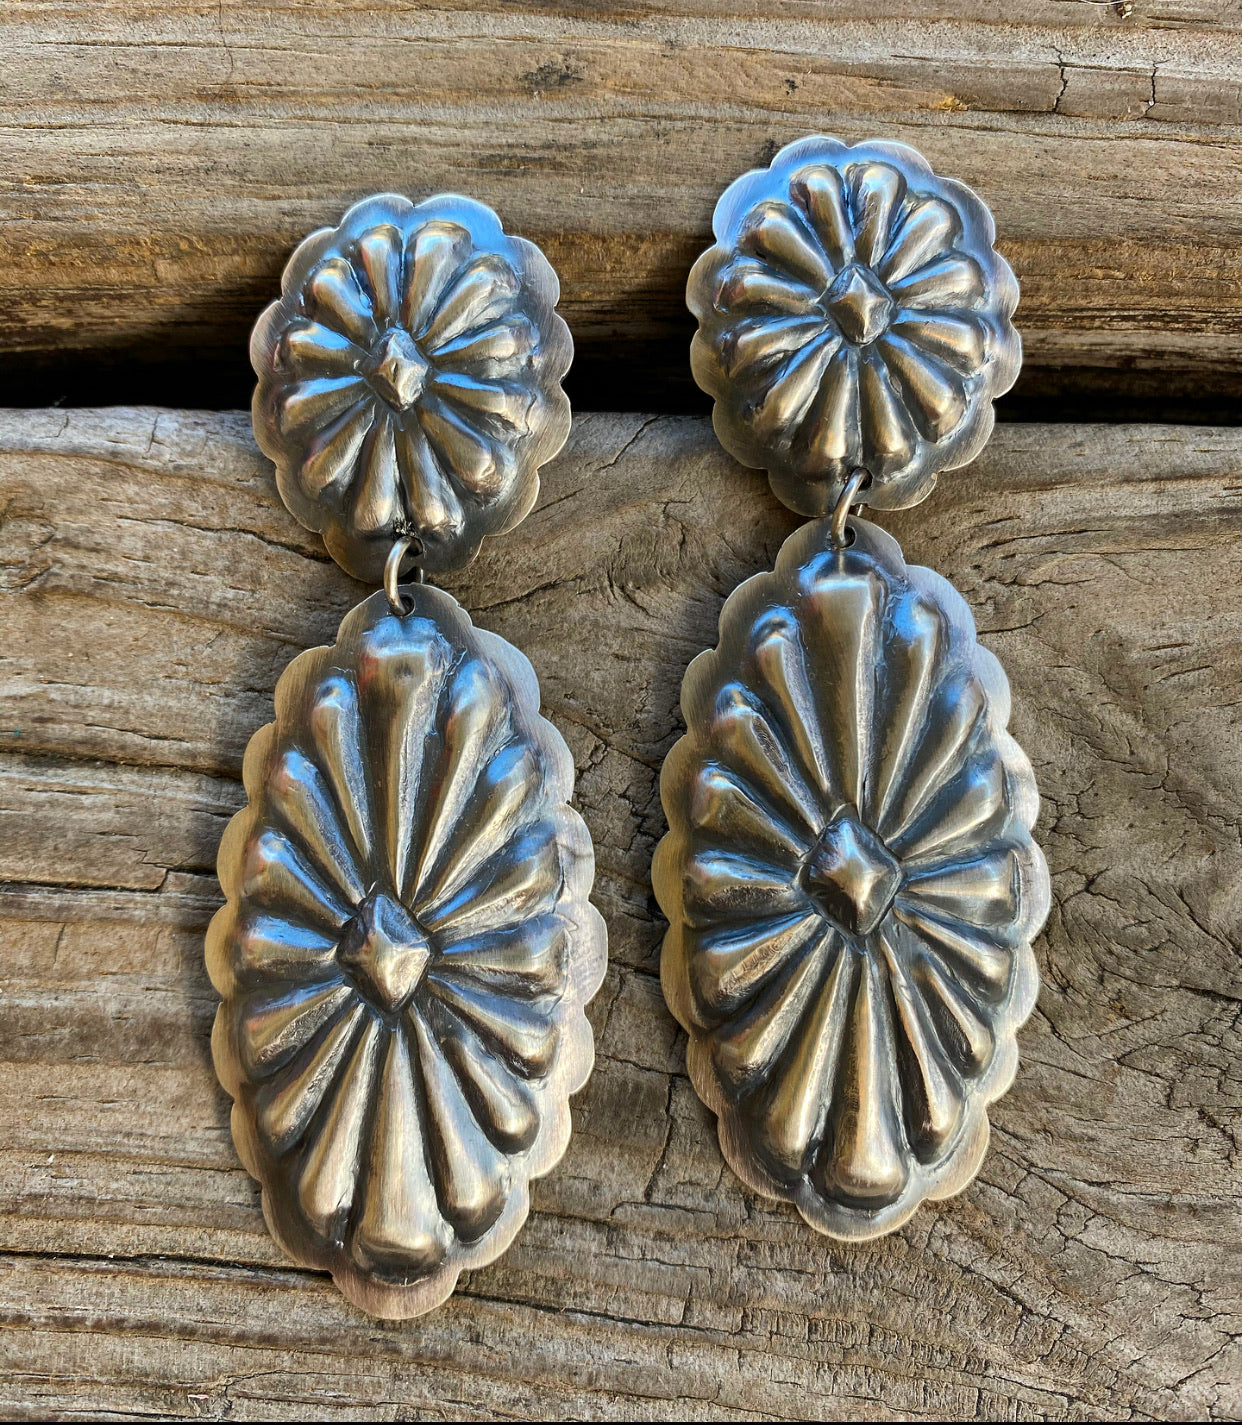 Handcrafted Sterling Silver Western Style Concho Earrings